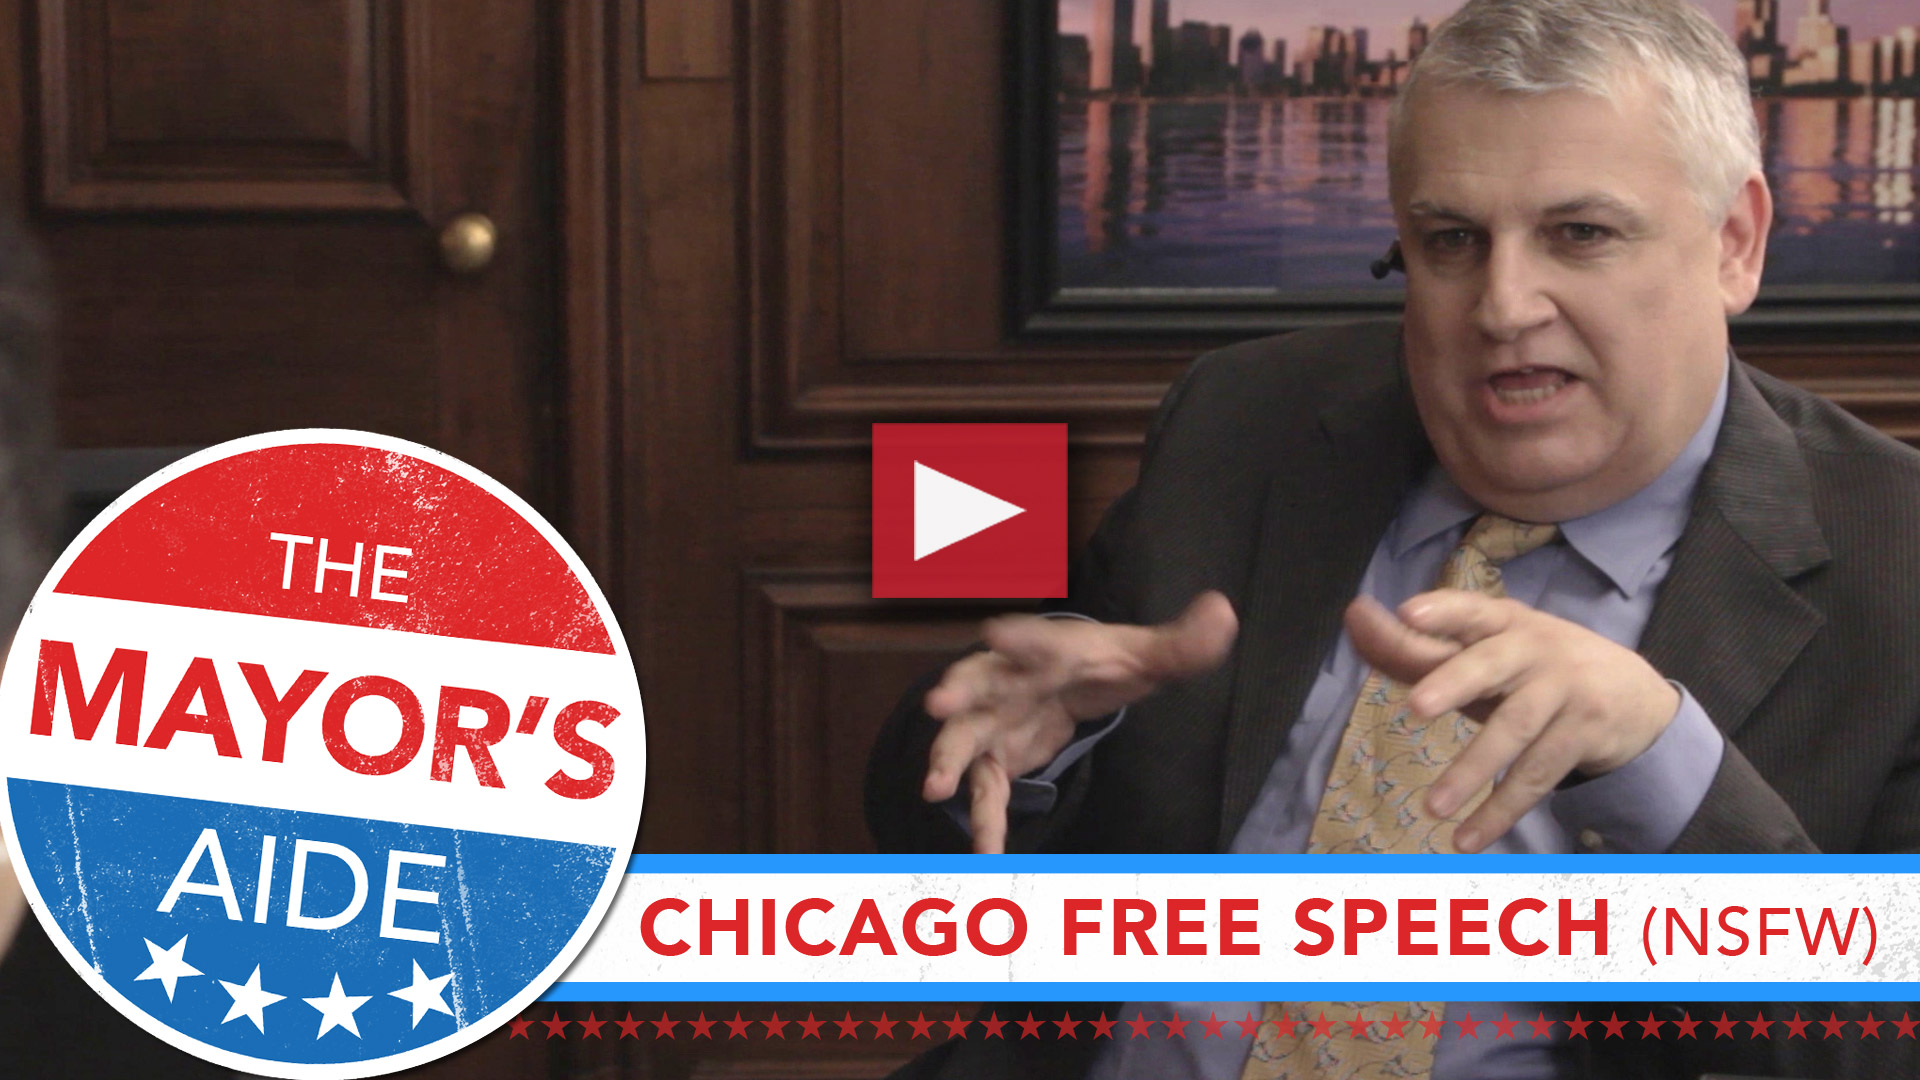 The Mayor's Aide - Chicago Free Speech (NSFW)